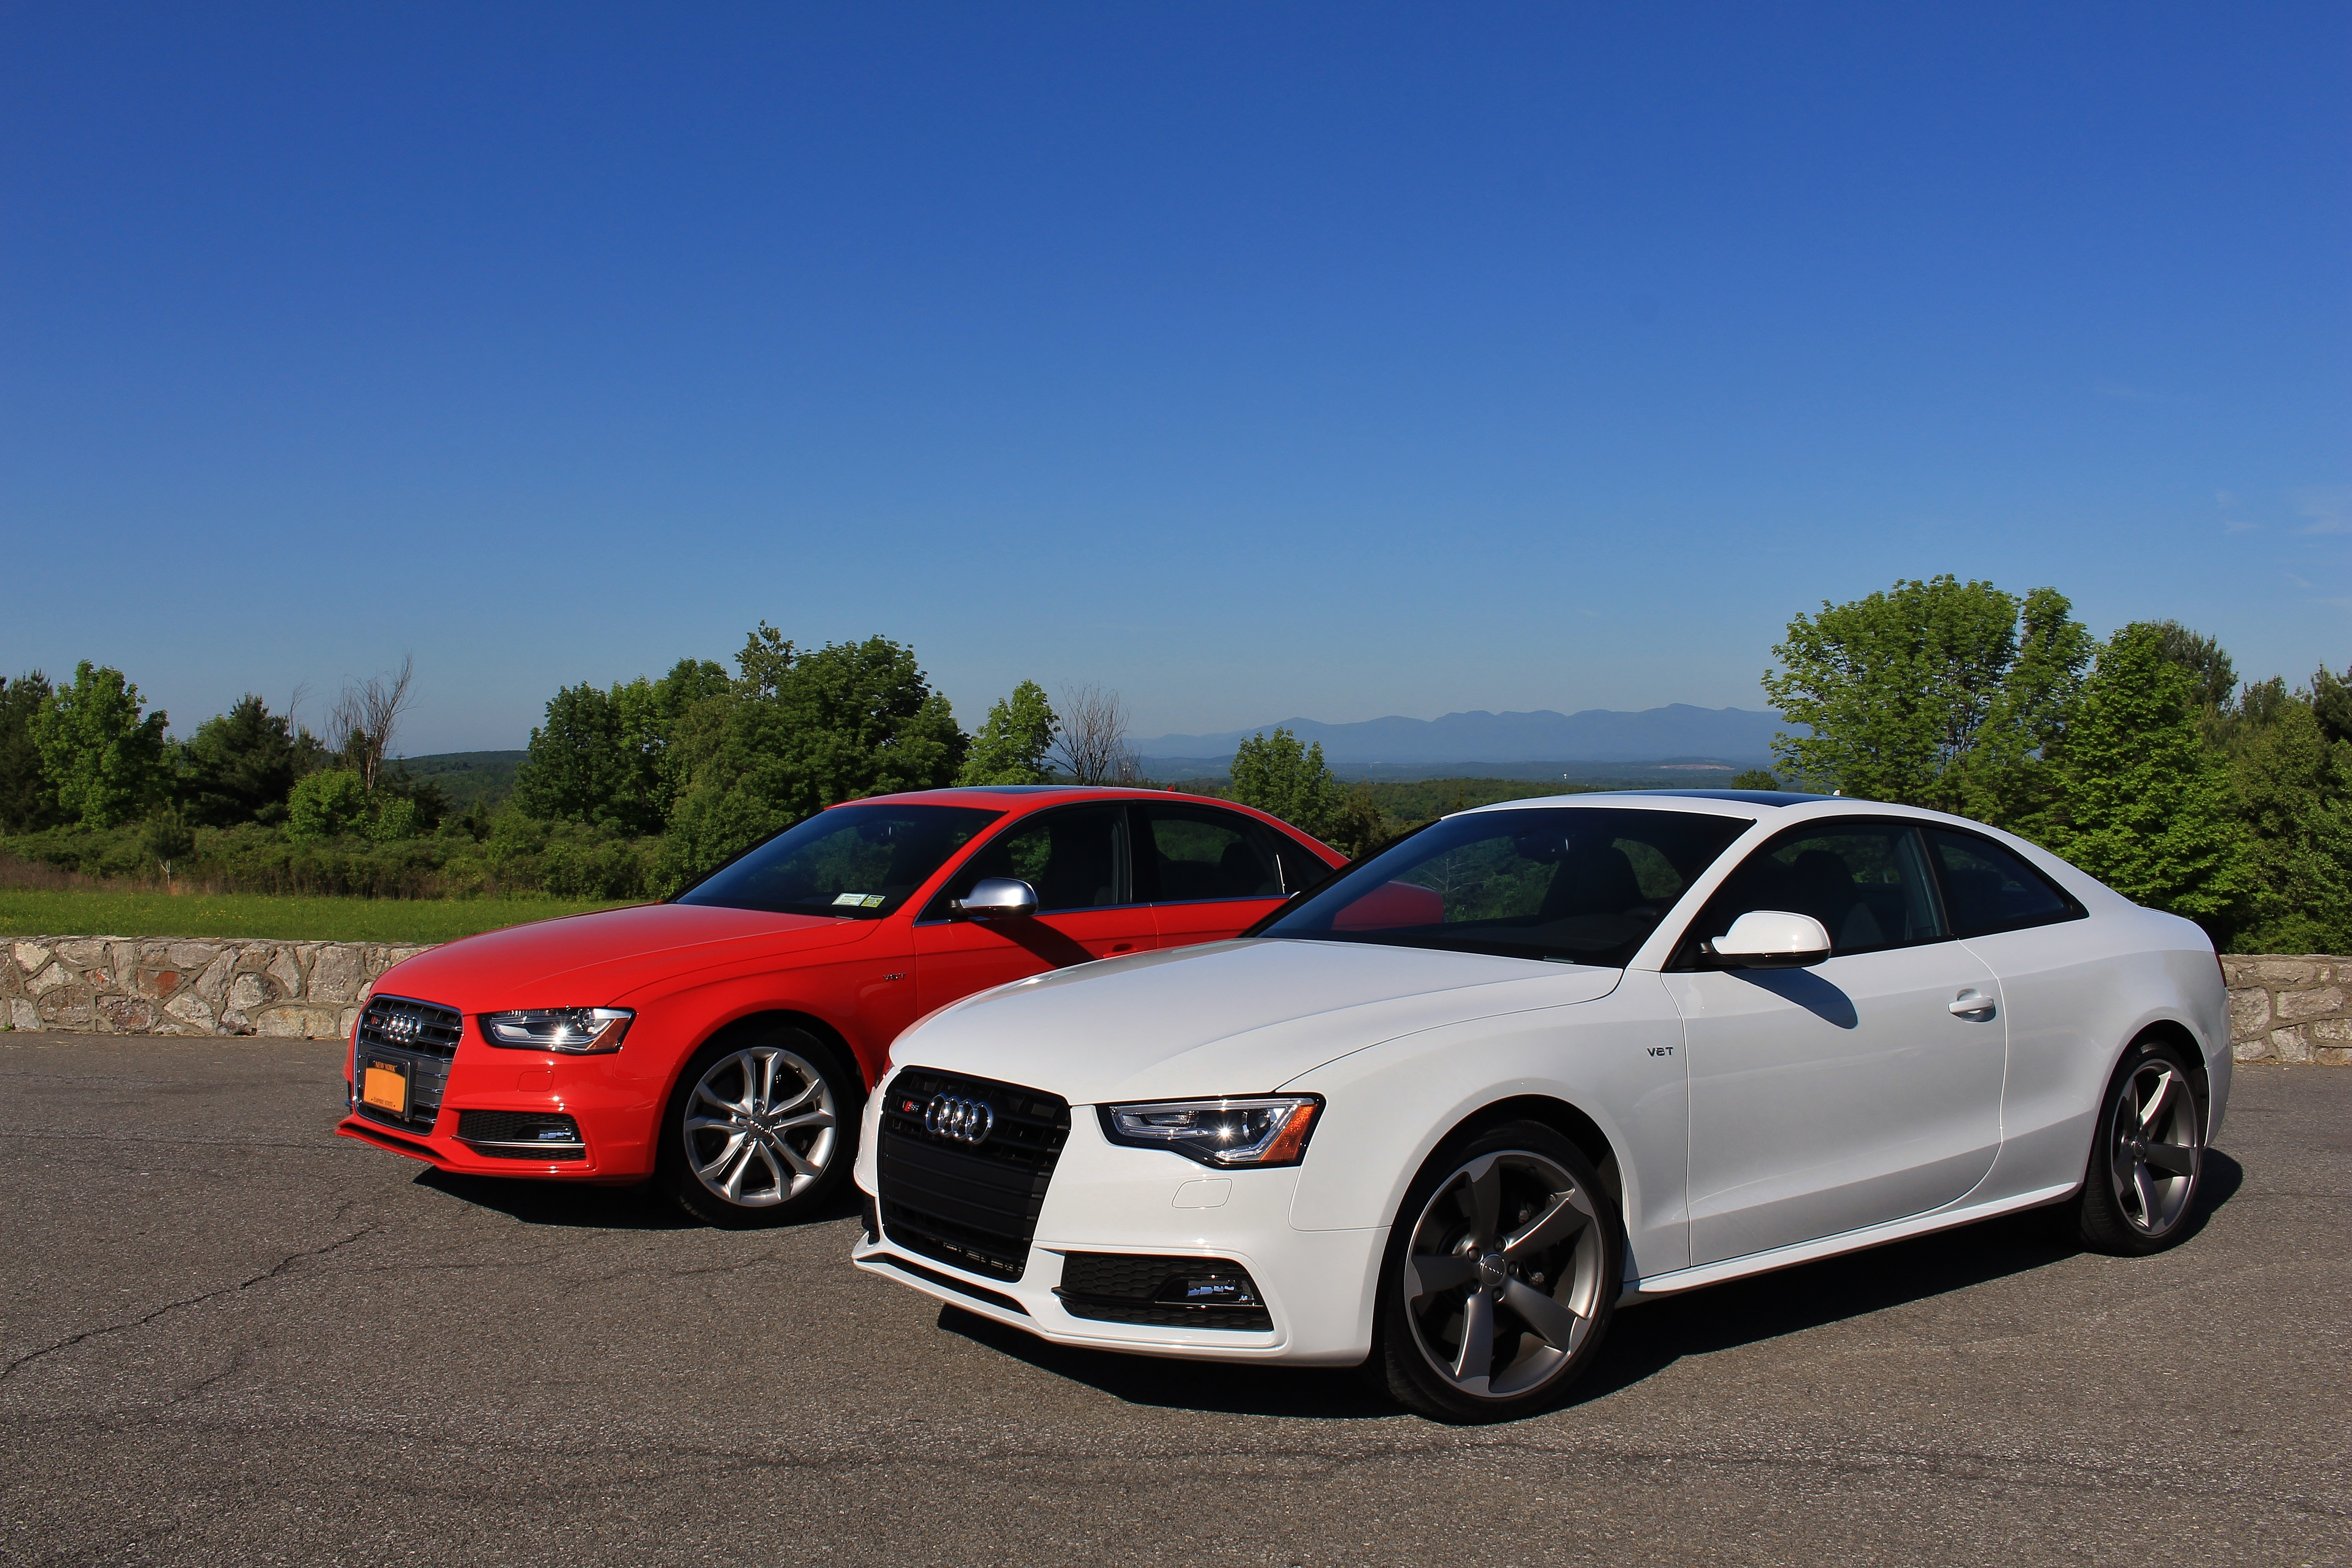 Pre-Owned Audi Sales | Audi Dealership near New Haven